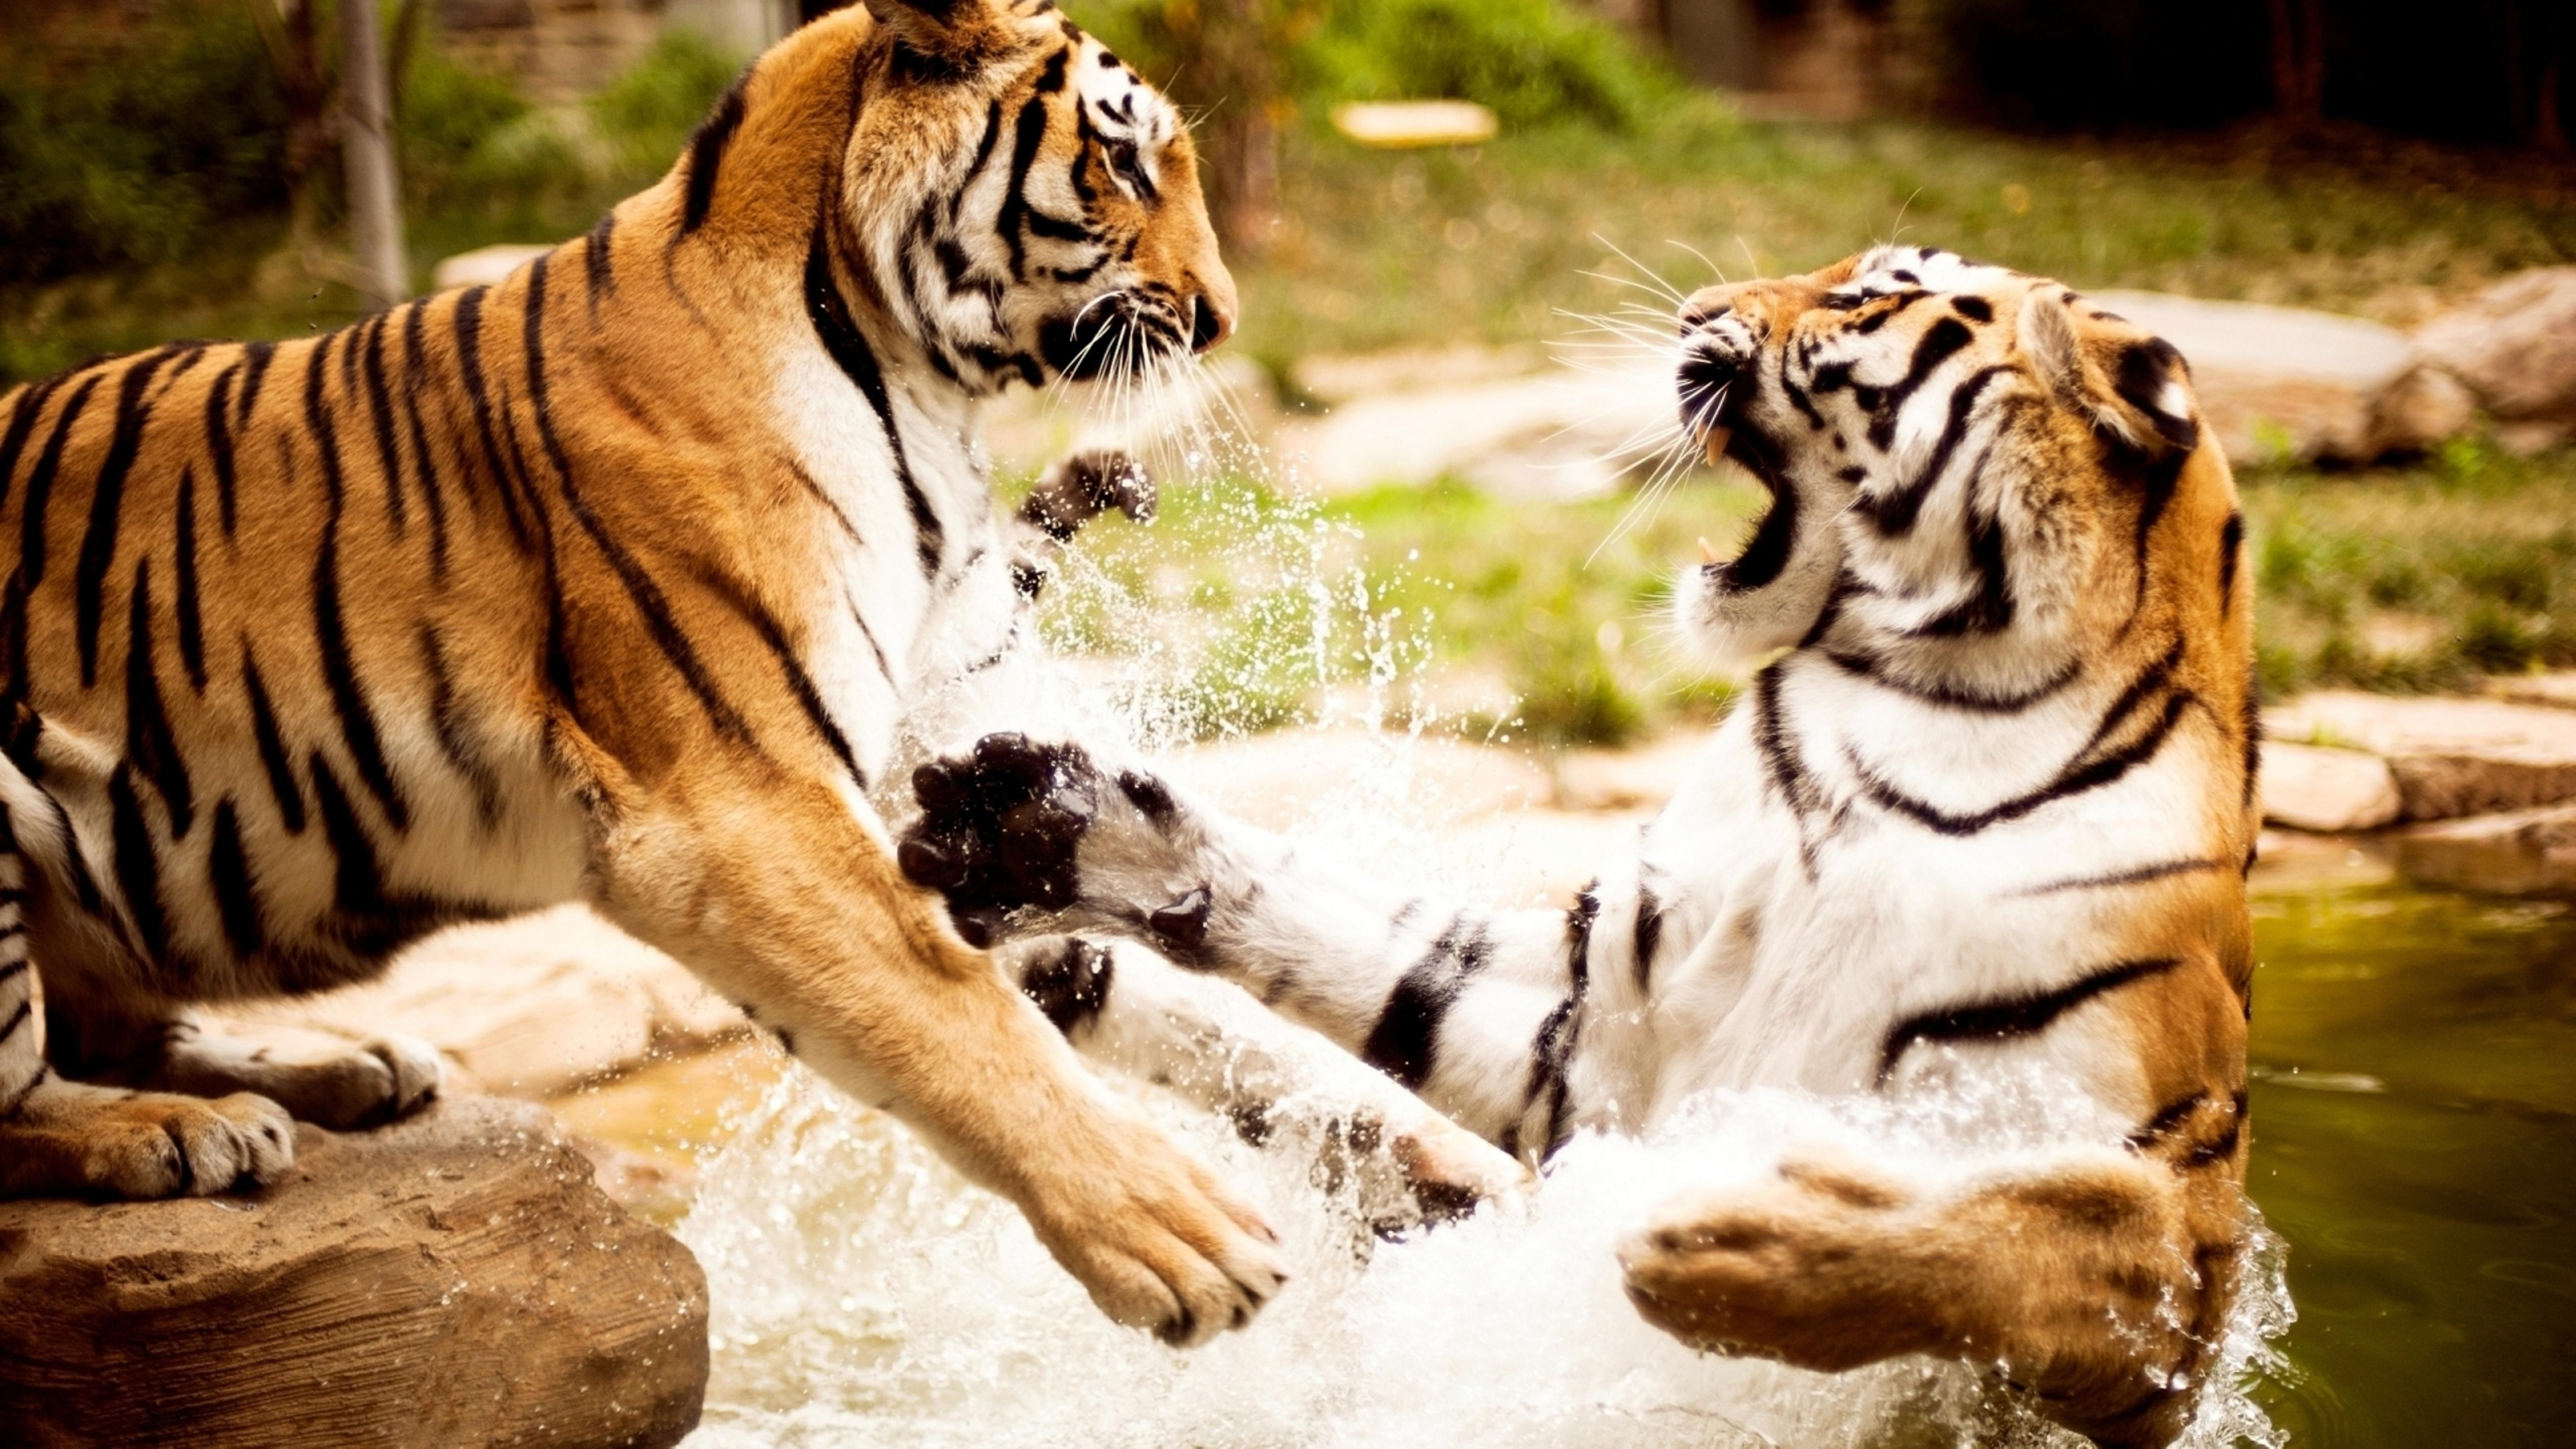 fight between tigers in water - wild animals wallpaper download